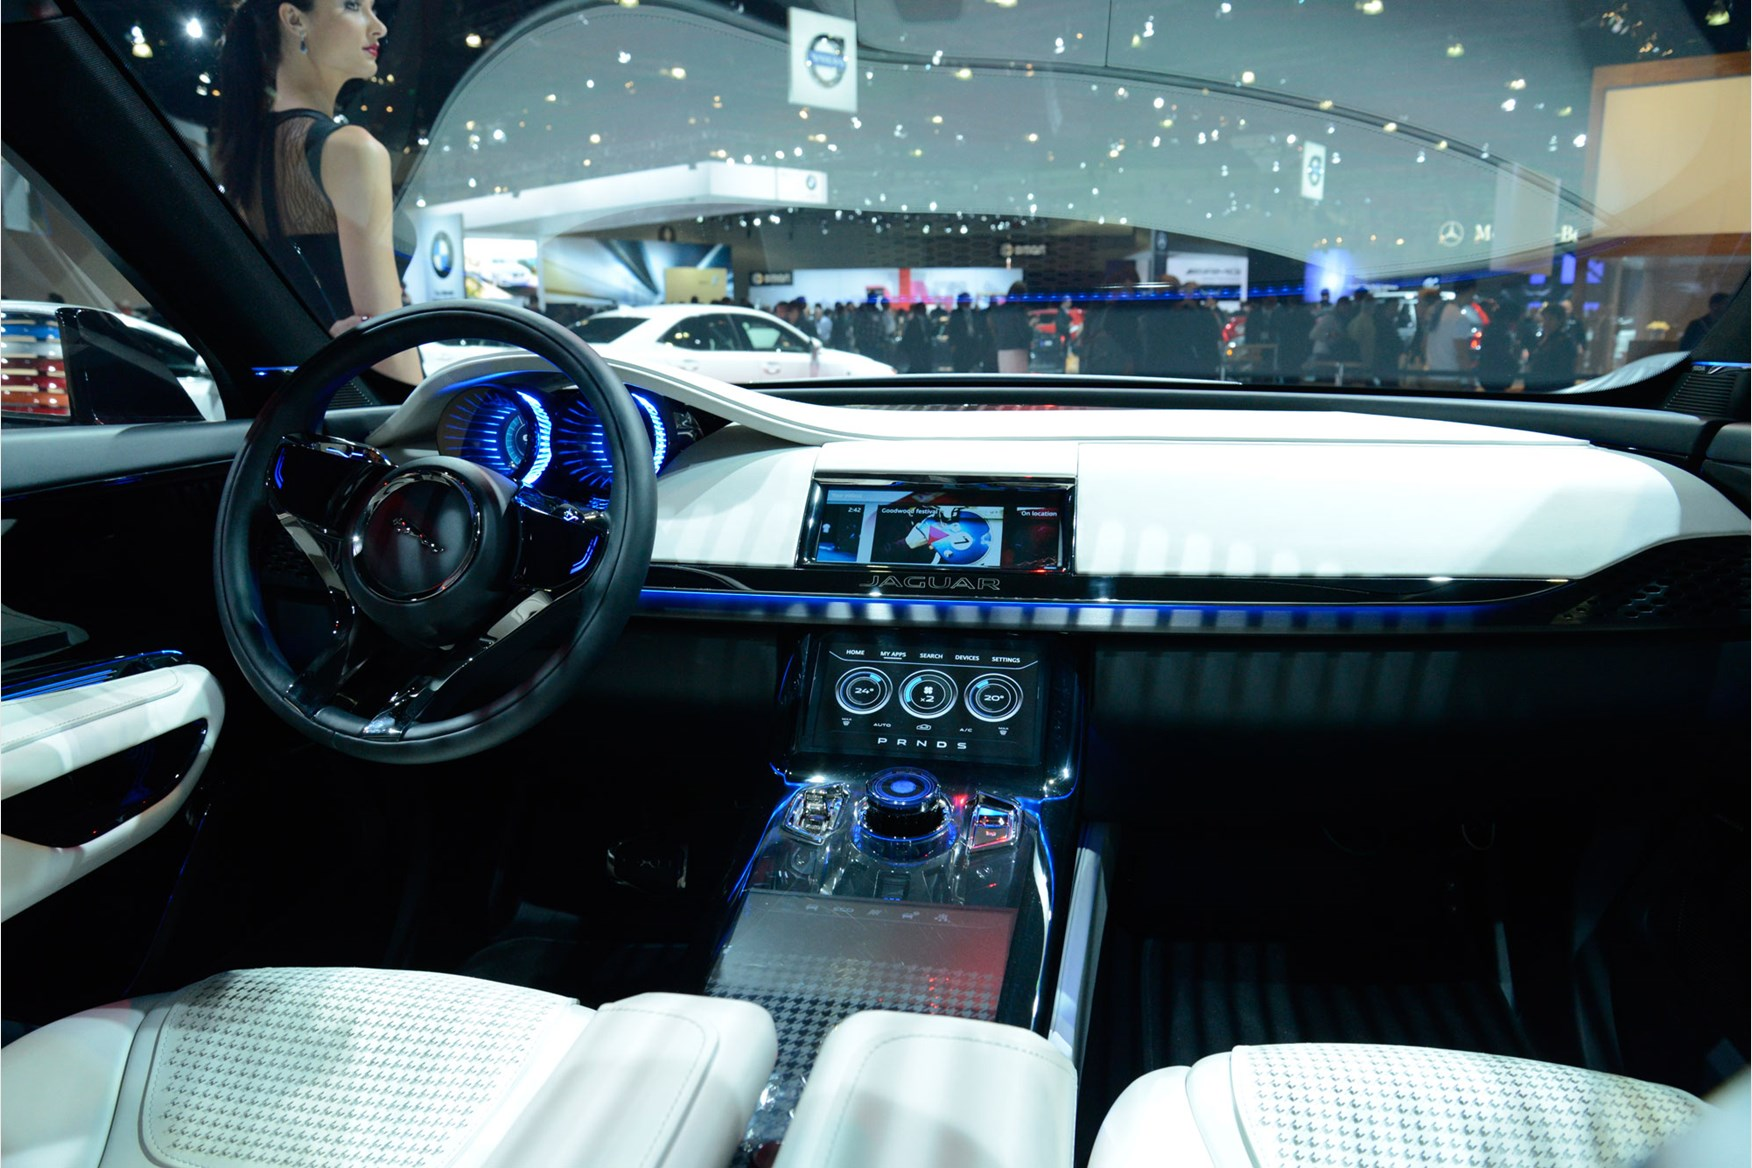 2018 jaguar suv interior. simple suv concept interior far more dramatic but twodial instrument layout has  been retained probably without the striking lighting decoration though jaguar in 2018 jaguar suv a